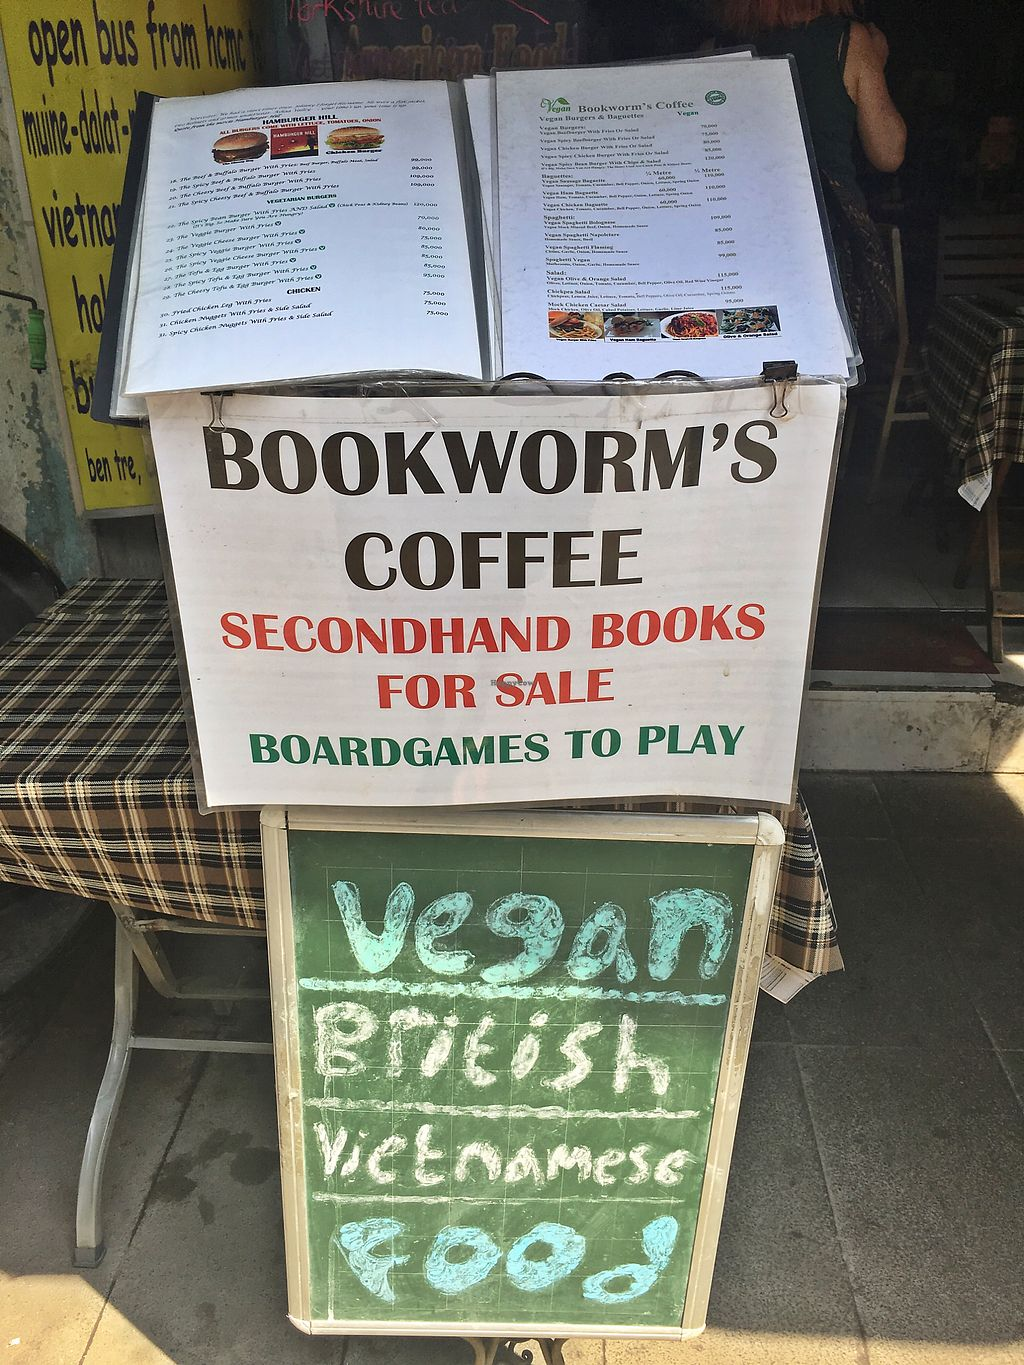 """Photo of Bookworm's Coffee  by <a href=""""/members/profile/MaikaKarremans"""">MaikaKarremans</a> <br/>Entrance  <br/> January 11, 2018  - <a href='/contact/abuse/image/52690/345477'>Report</a>"""